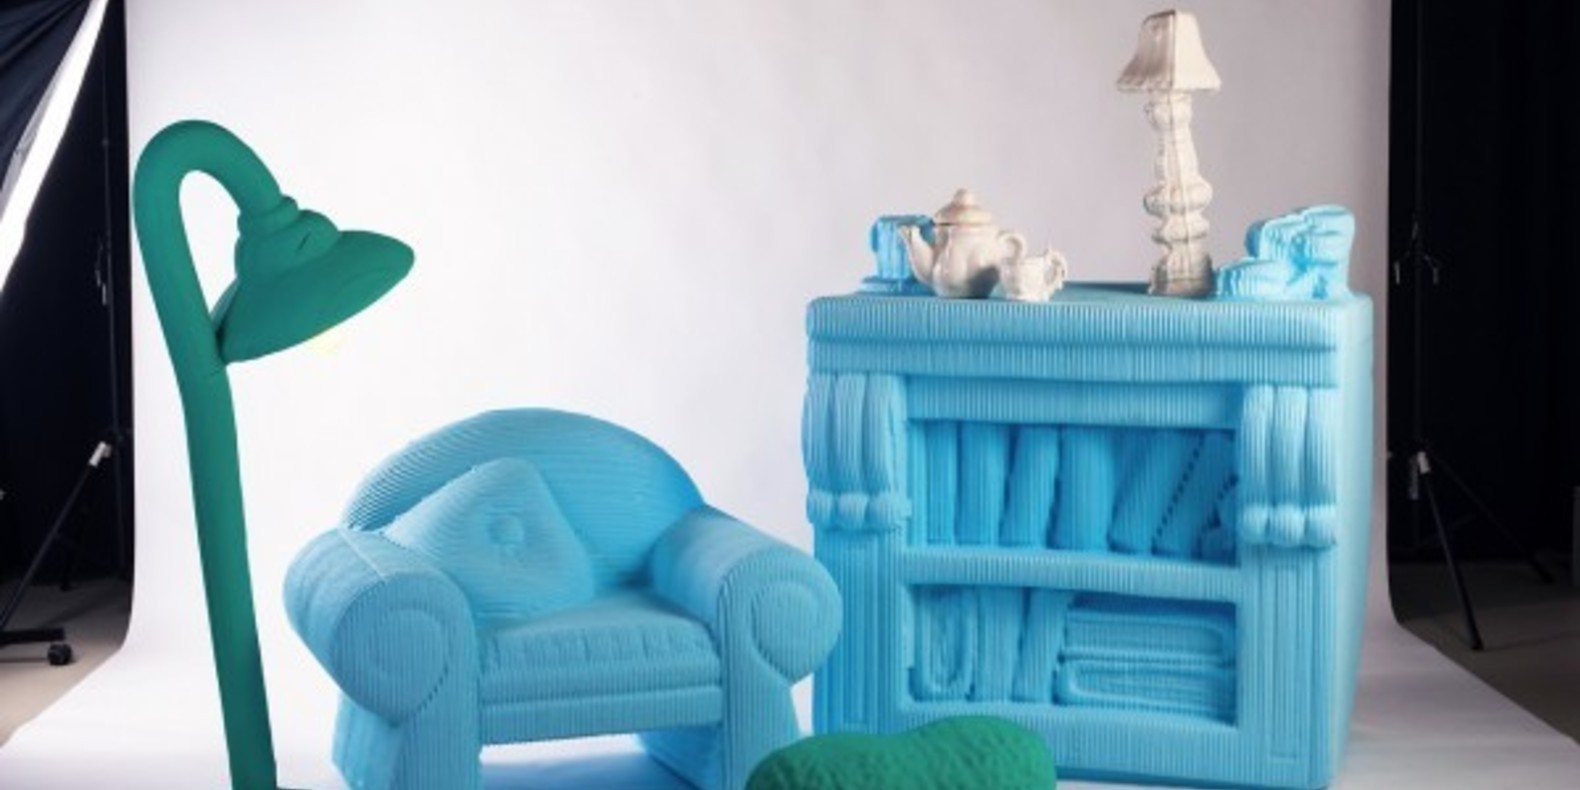 Doll furniture printed in 3D and in real size